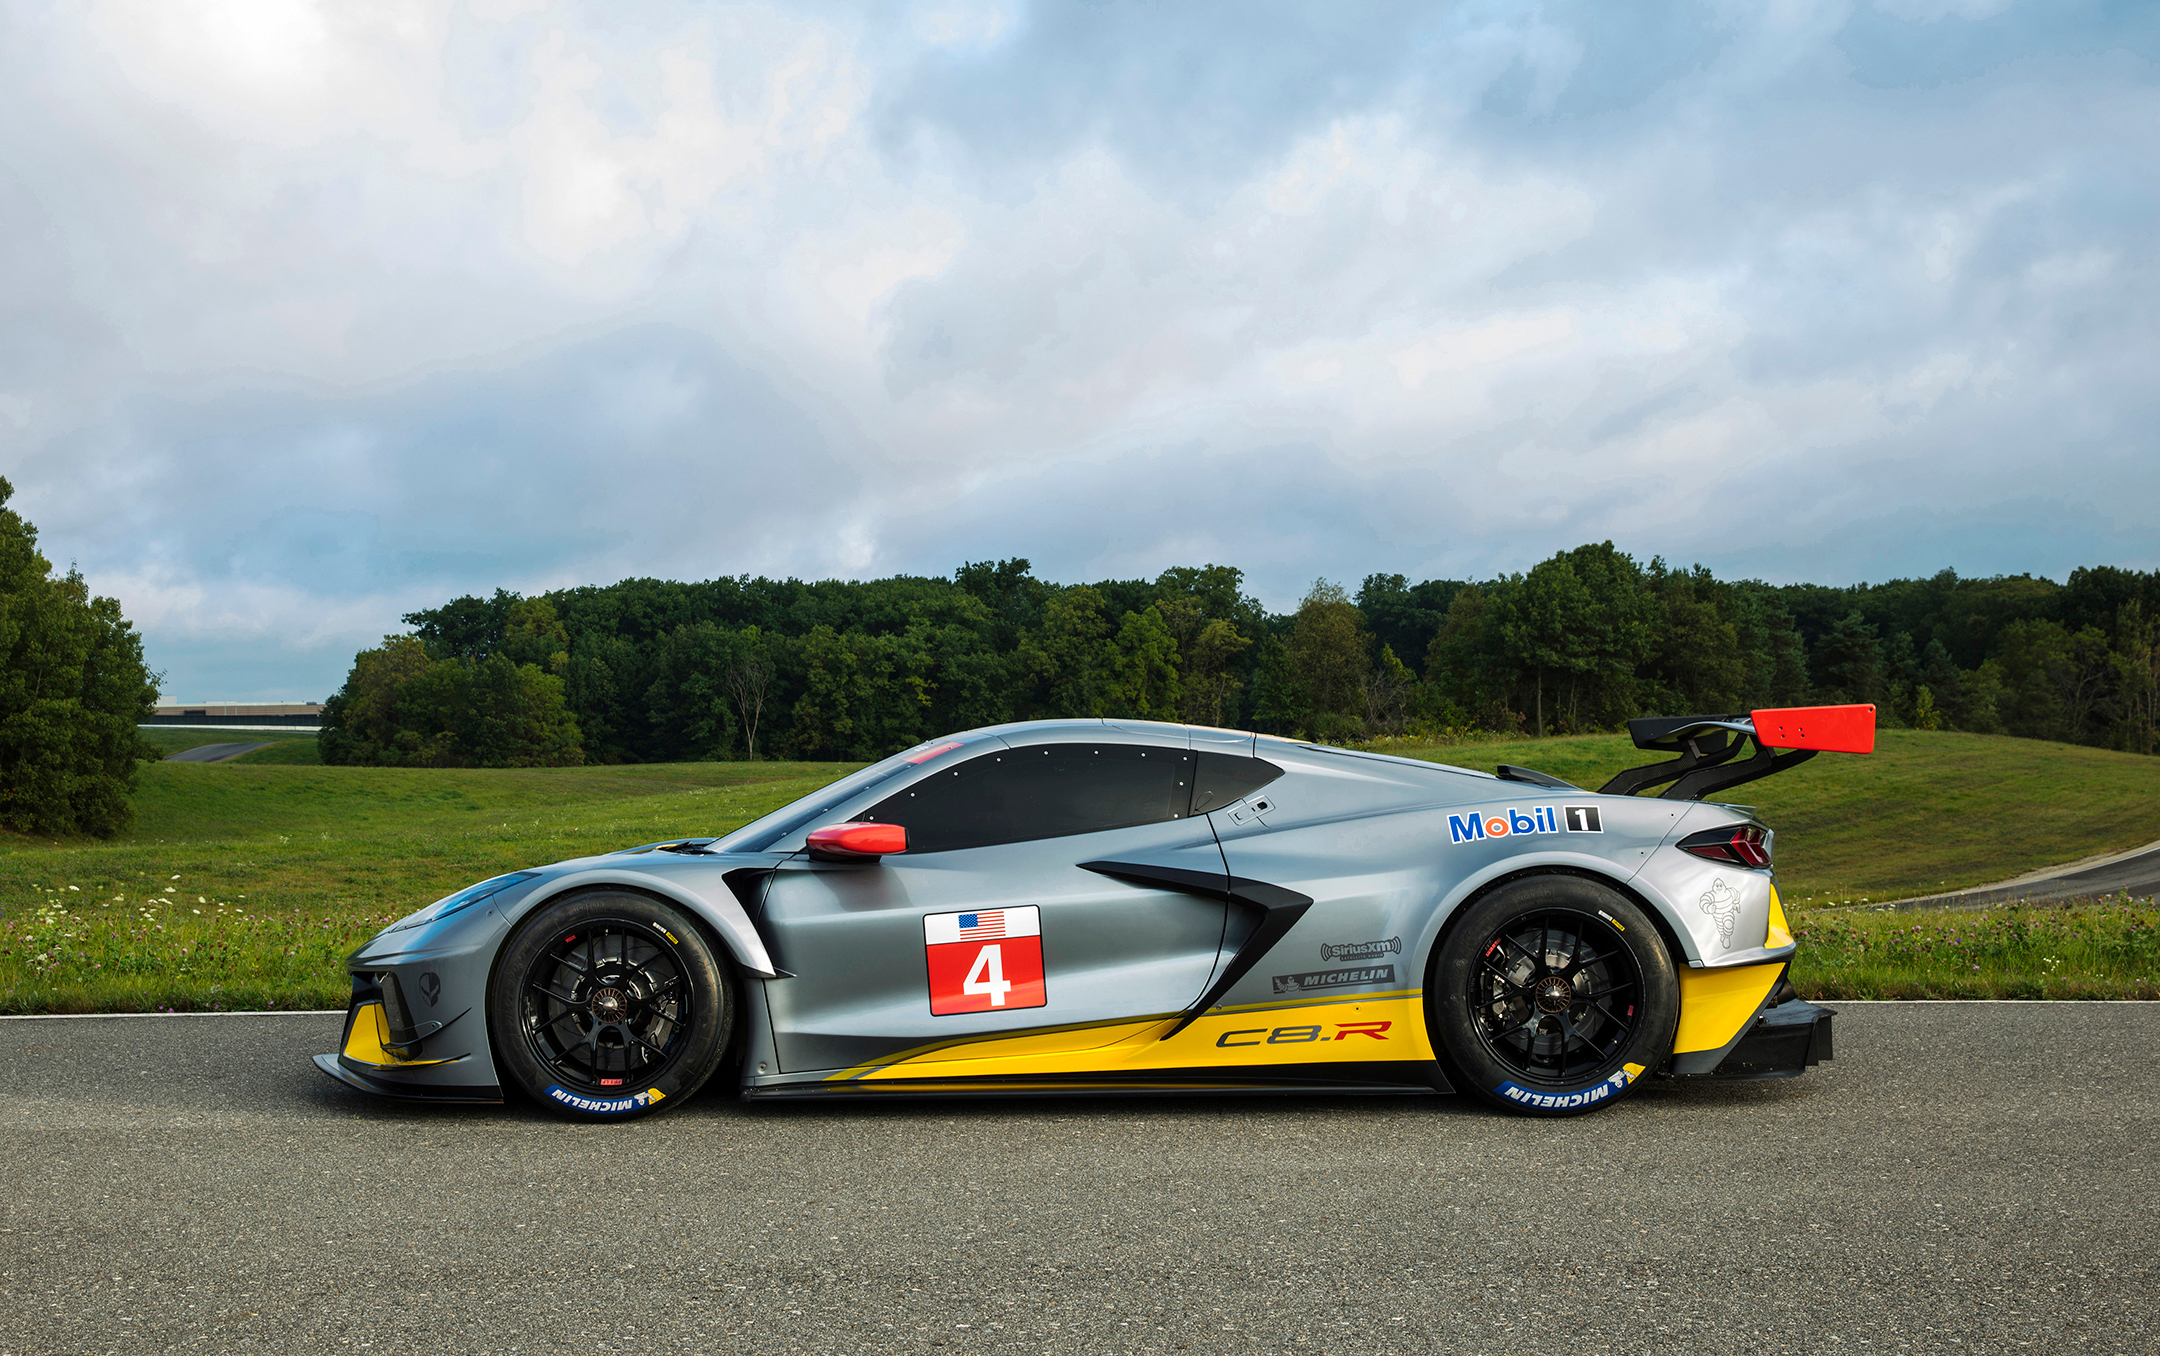 Chevrolet Corvette C8.R - 2019 - side-face / profil